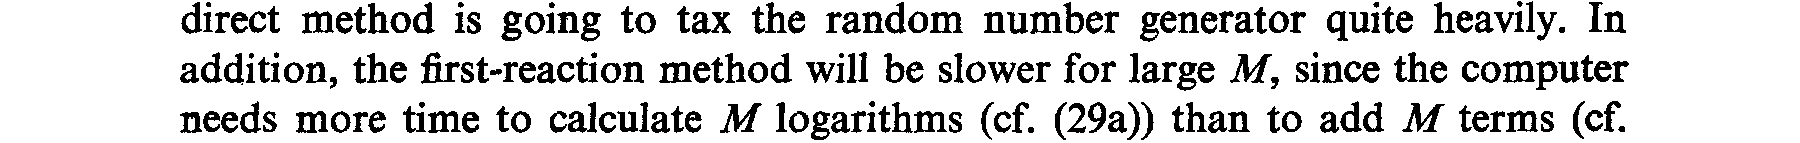 However, the first-reaction method evidently requires M separate random numbers from the uniform random number generator in order to